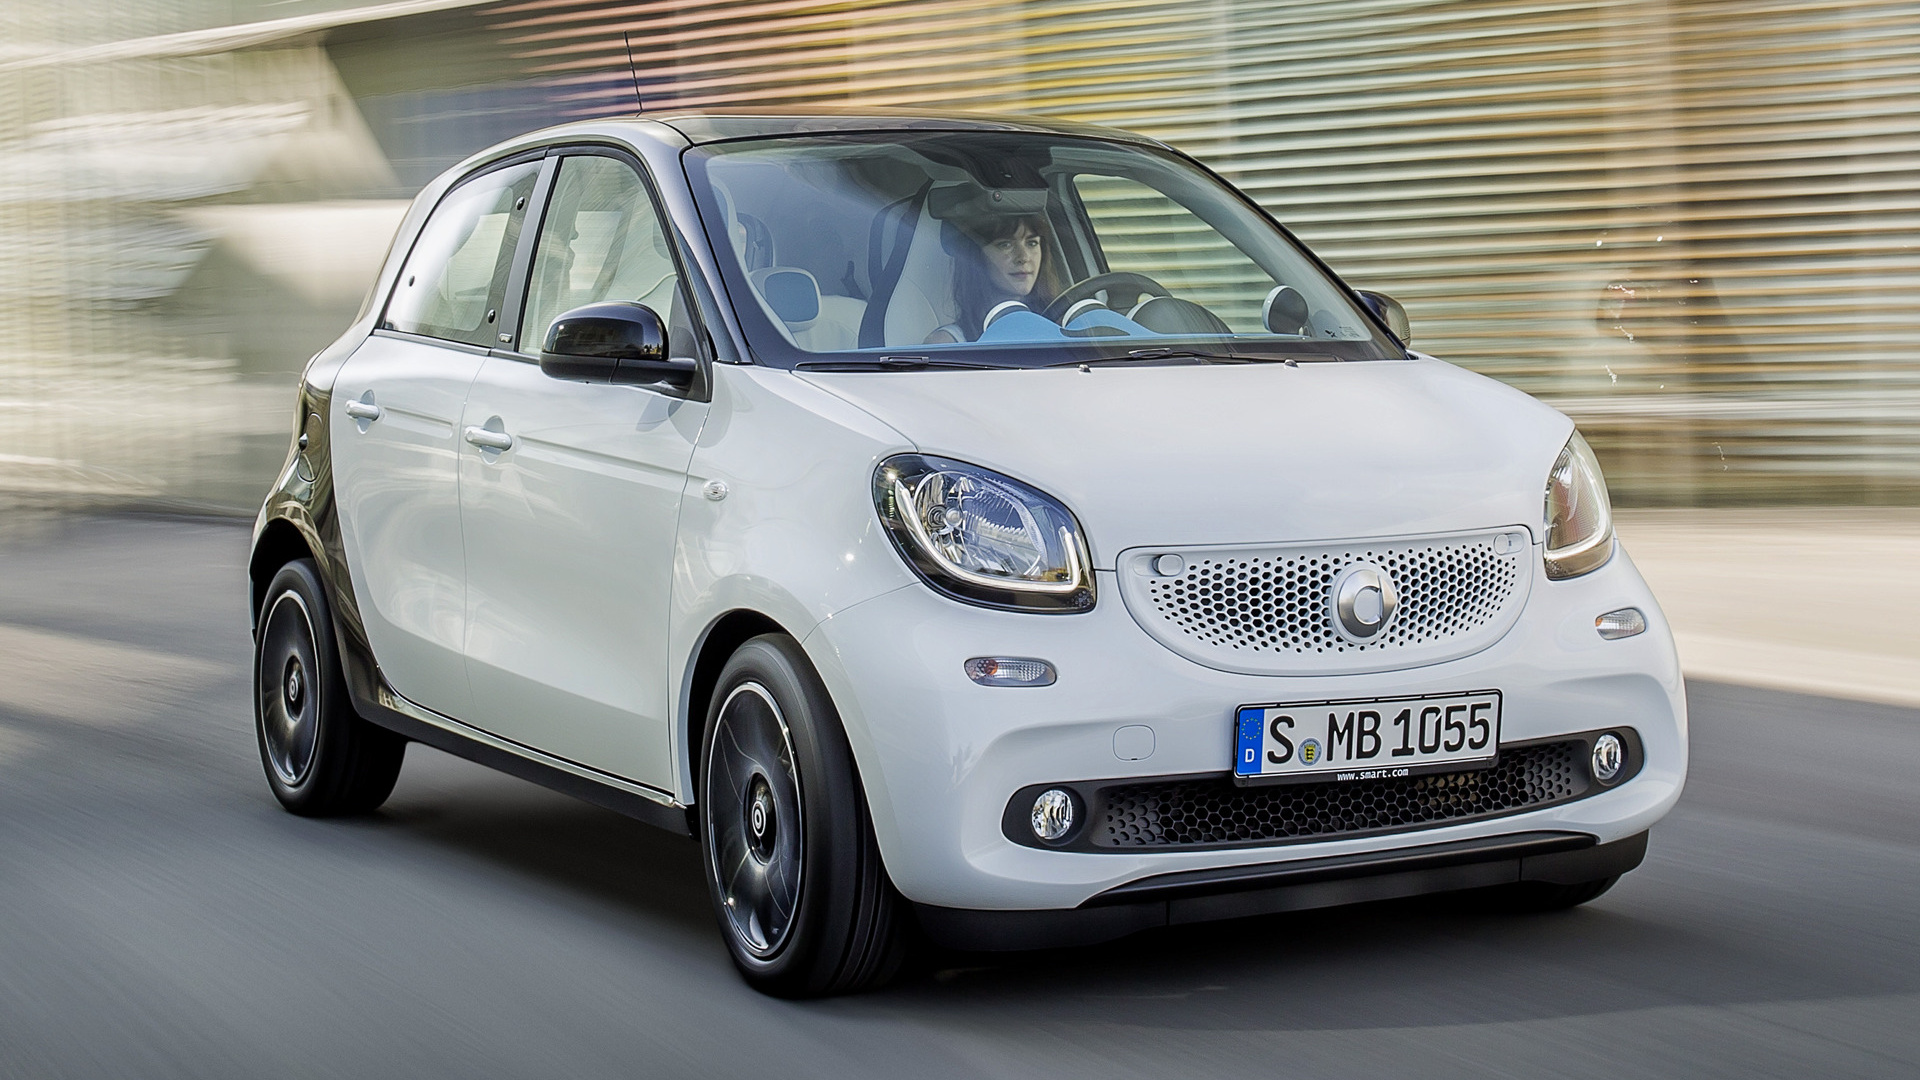 Smart Forfour proxy (2014) Wallpapers and HD Images - Car ...